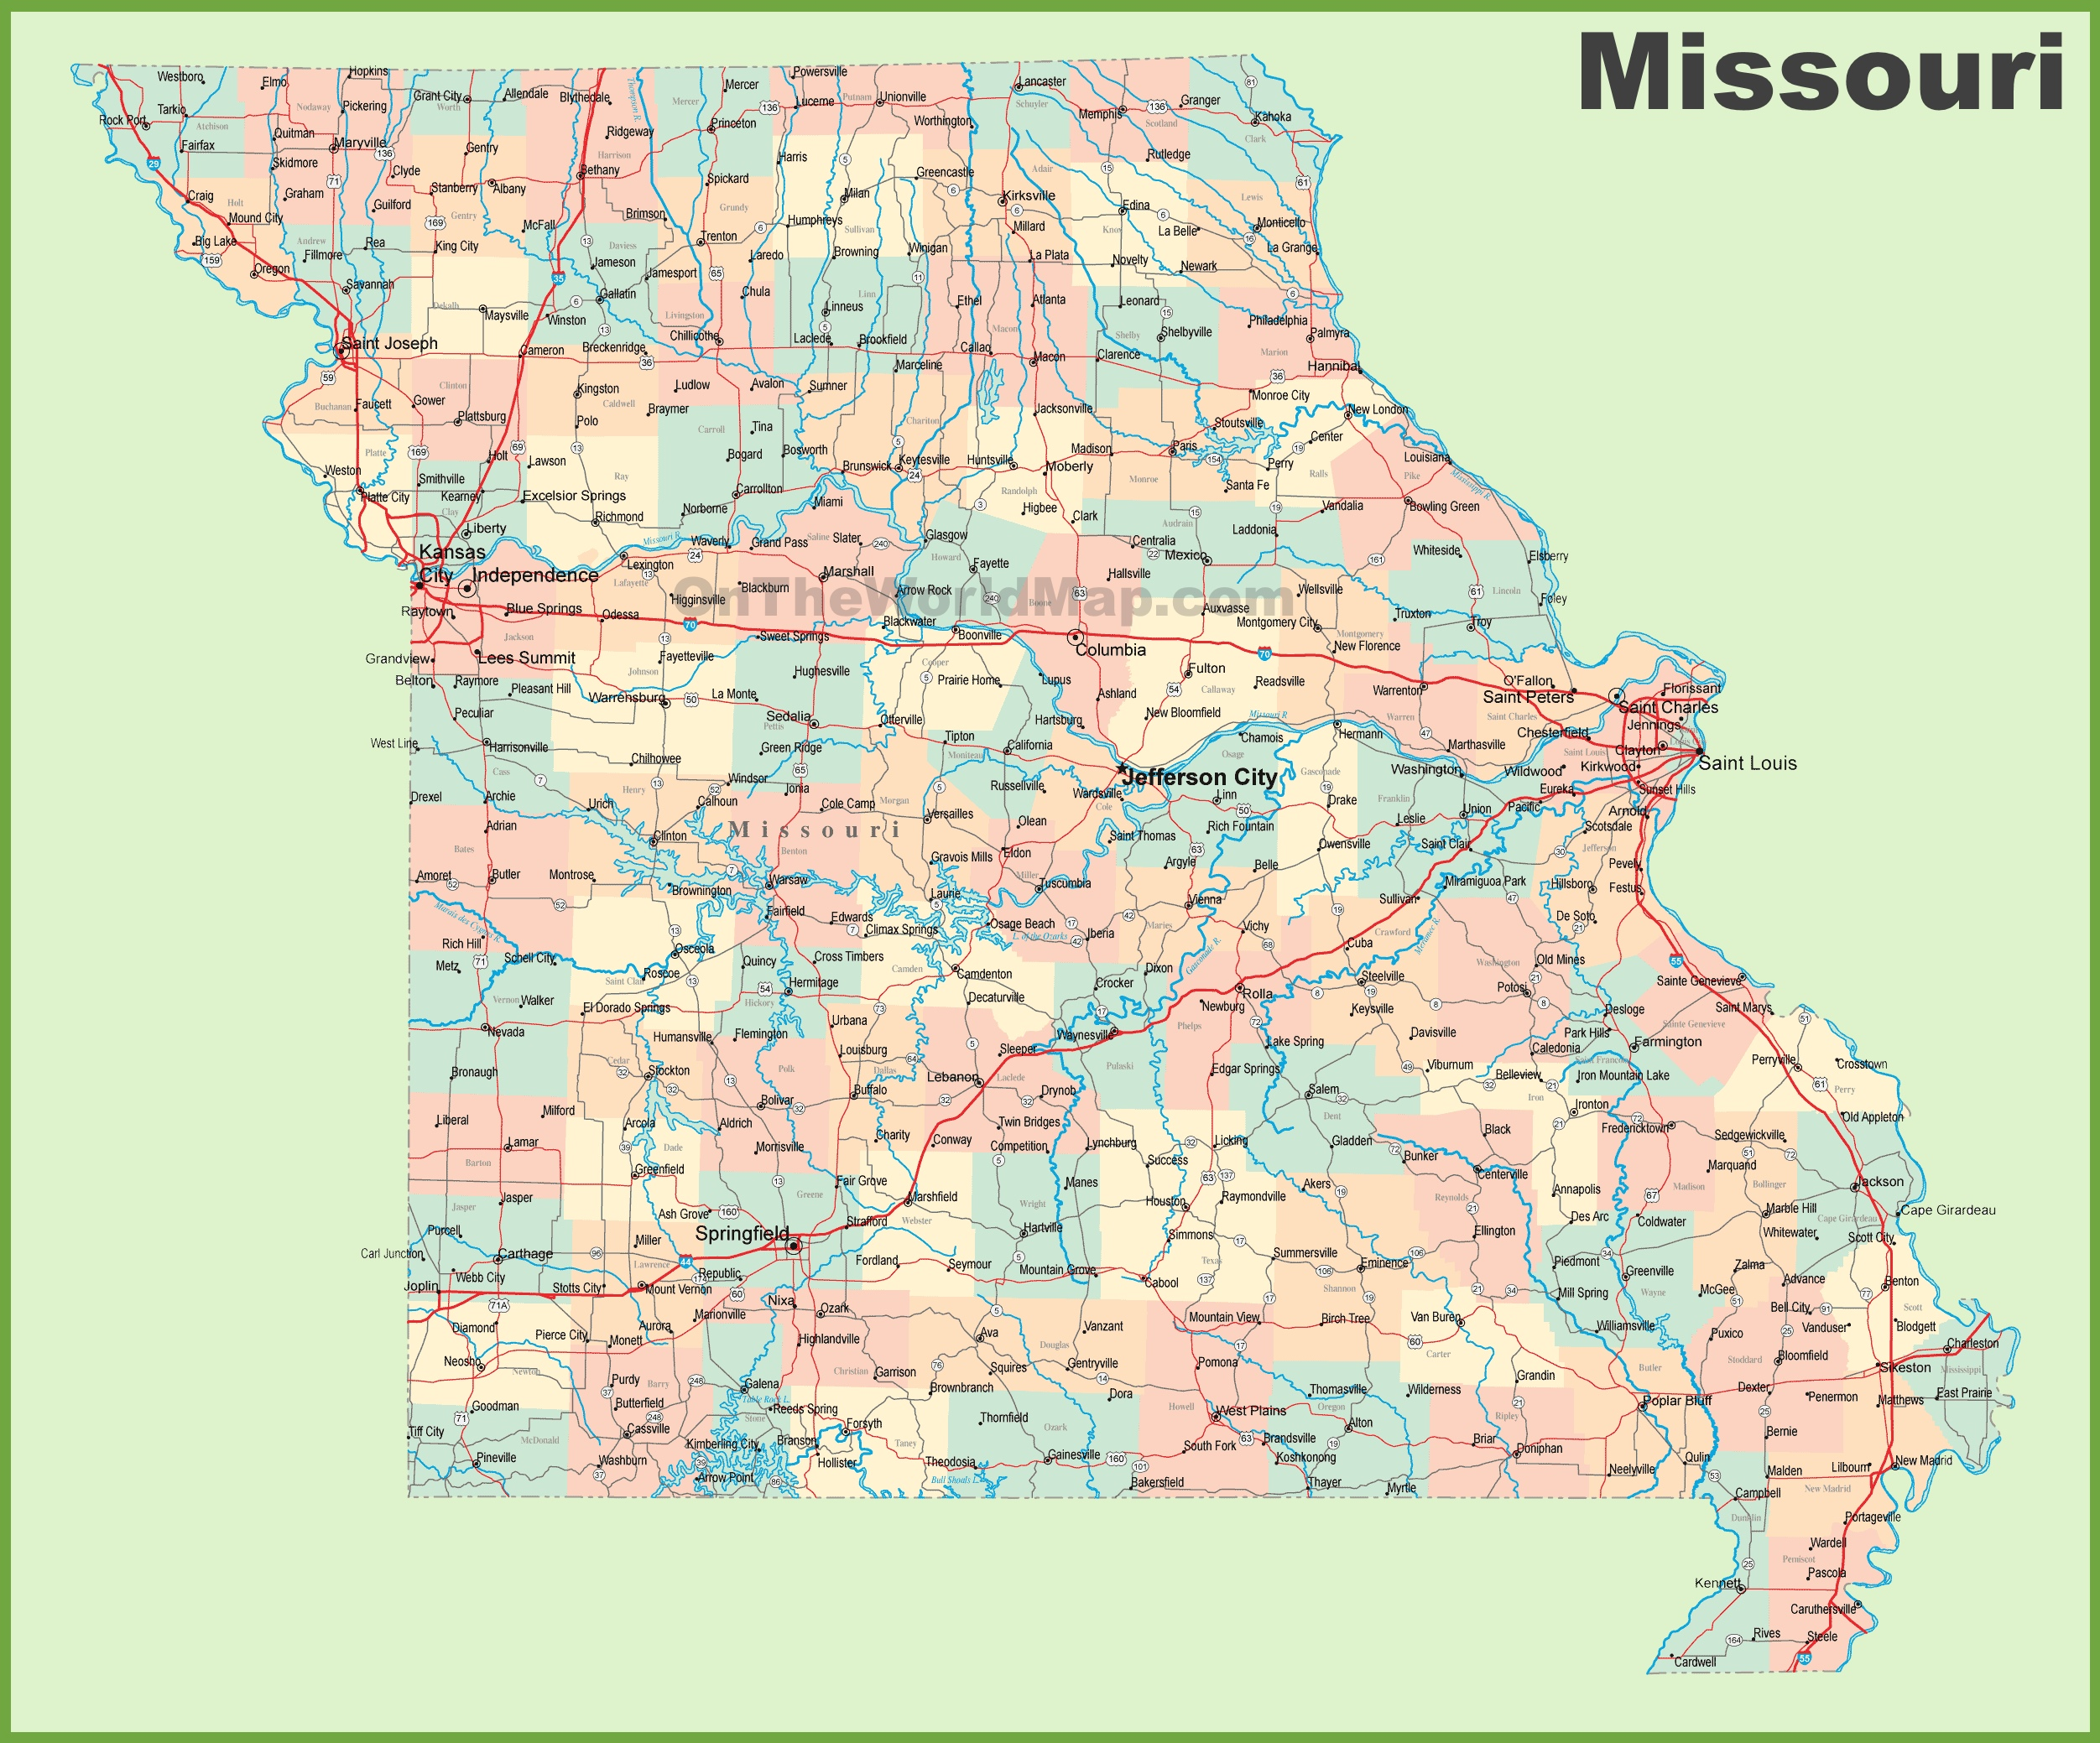 Road Map Of Missouri With Cities - Missouri map